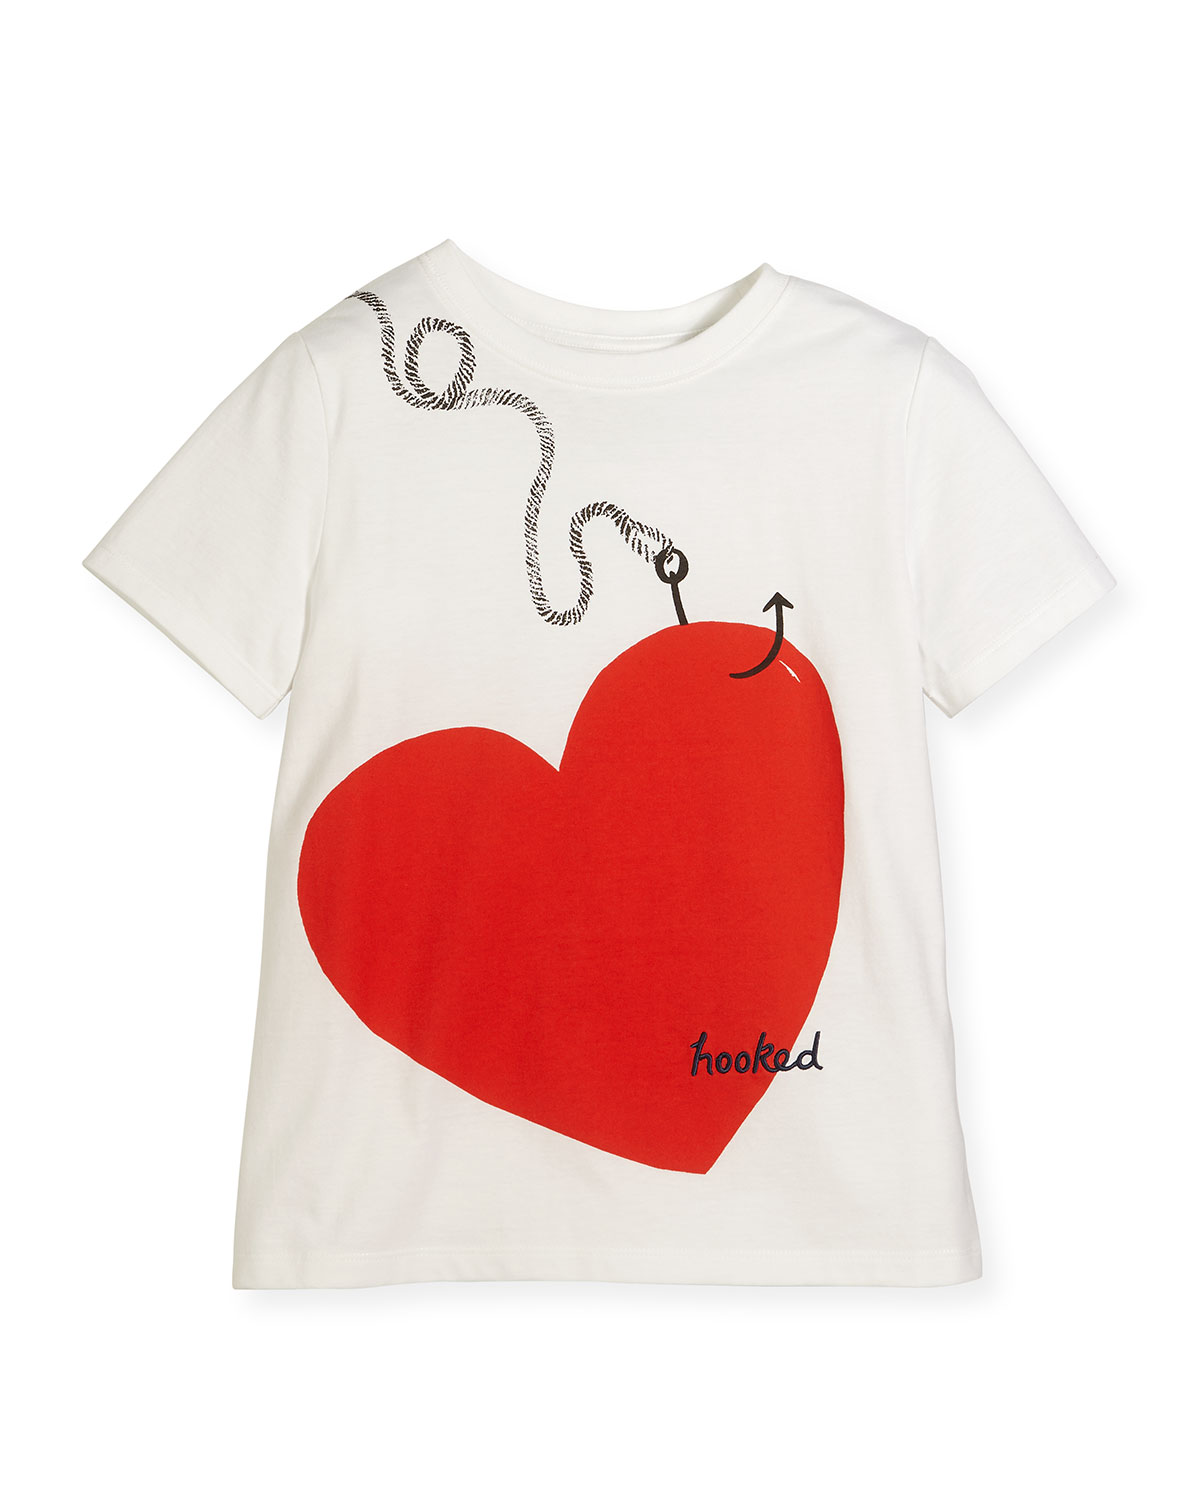 Hooked Heart Jersey Tee, White, Size 4-14